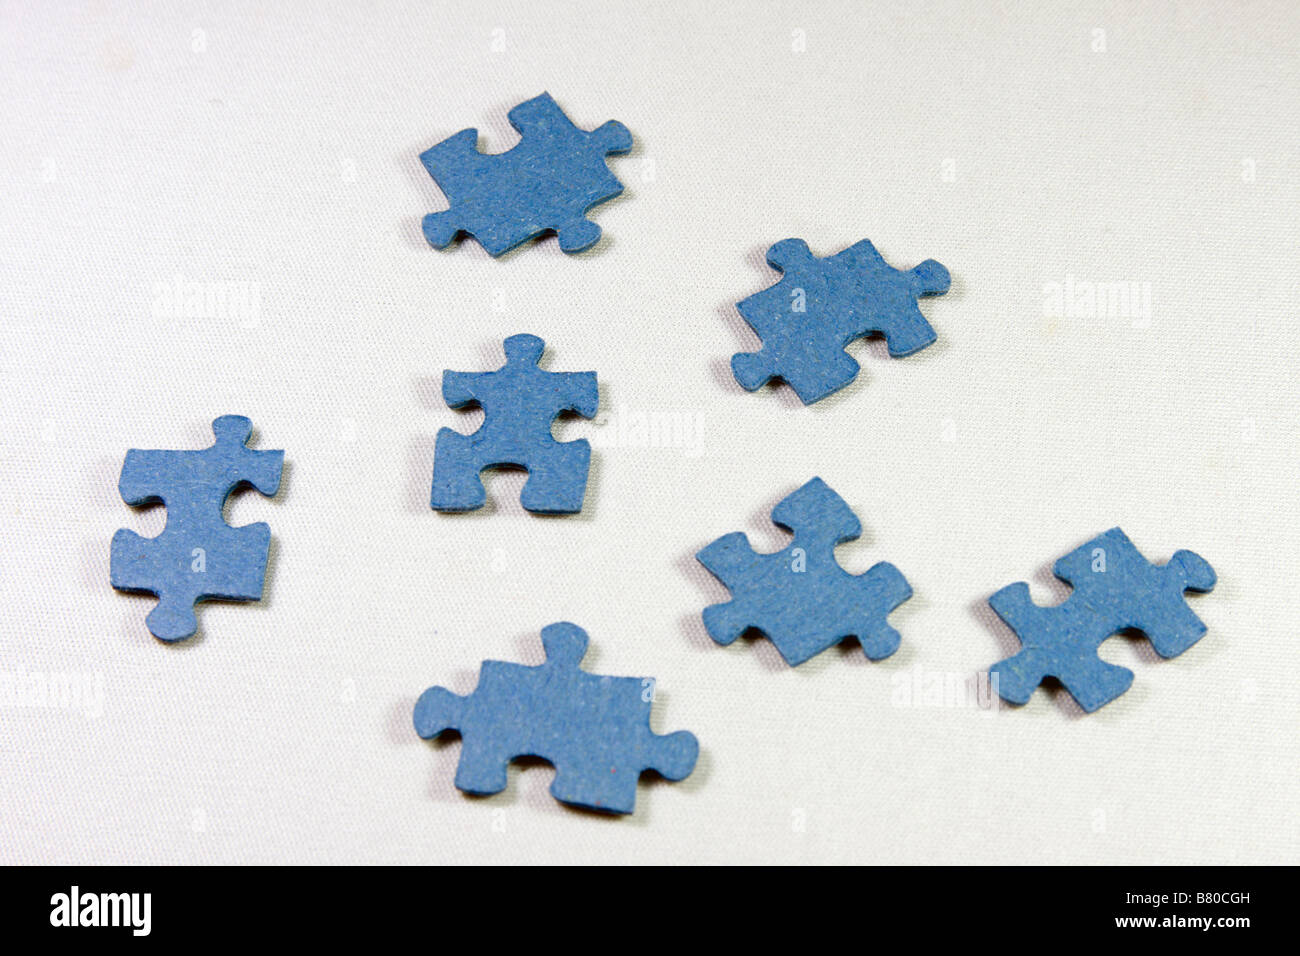 Blue pieces of puzzle. - Stock Image